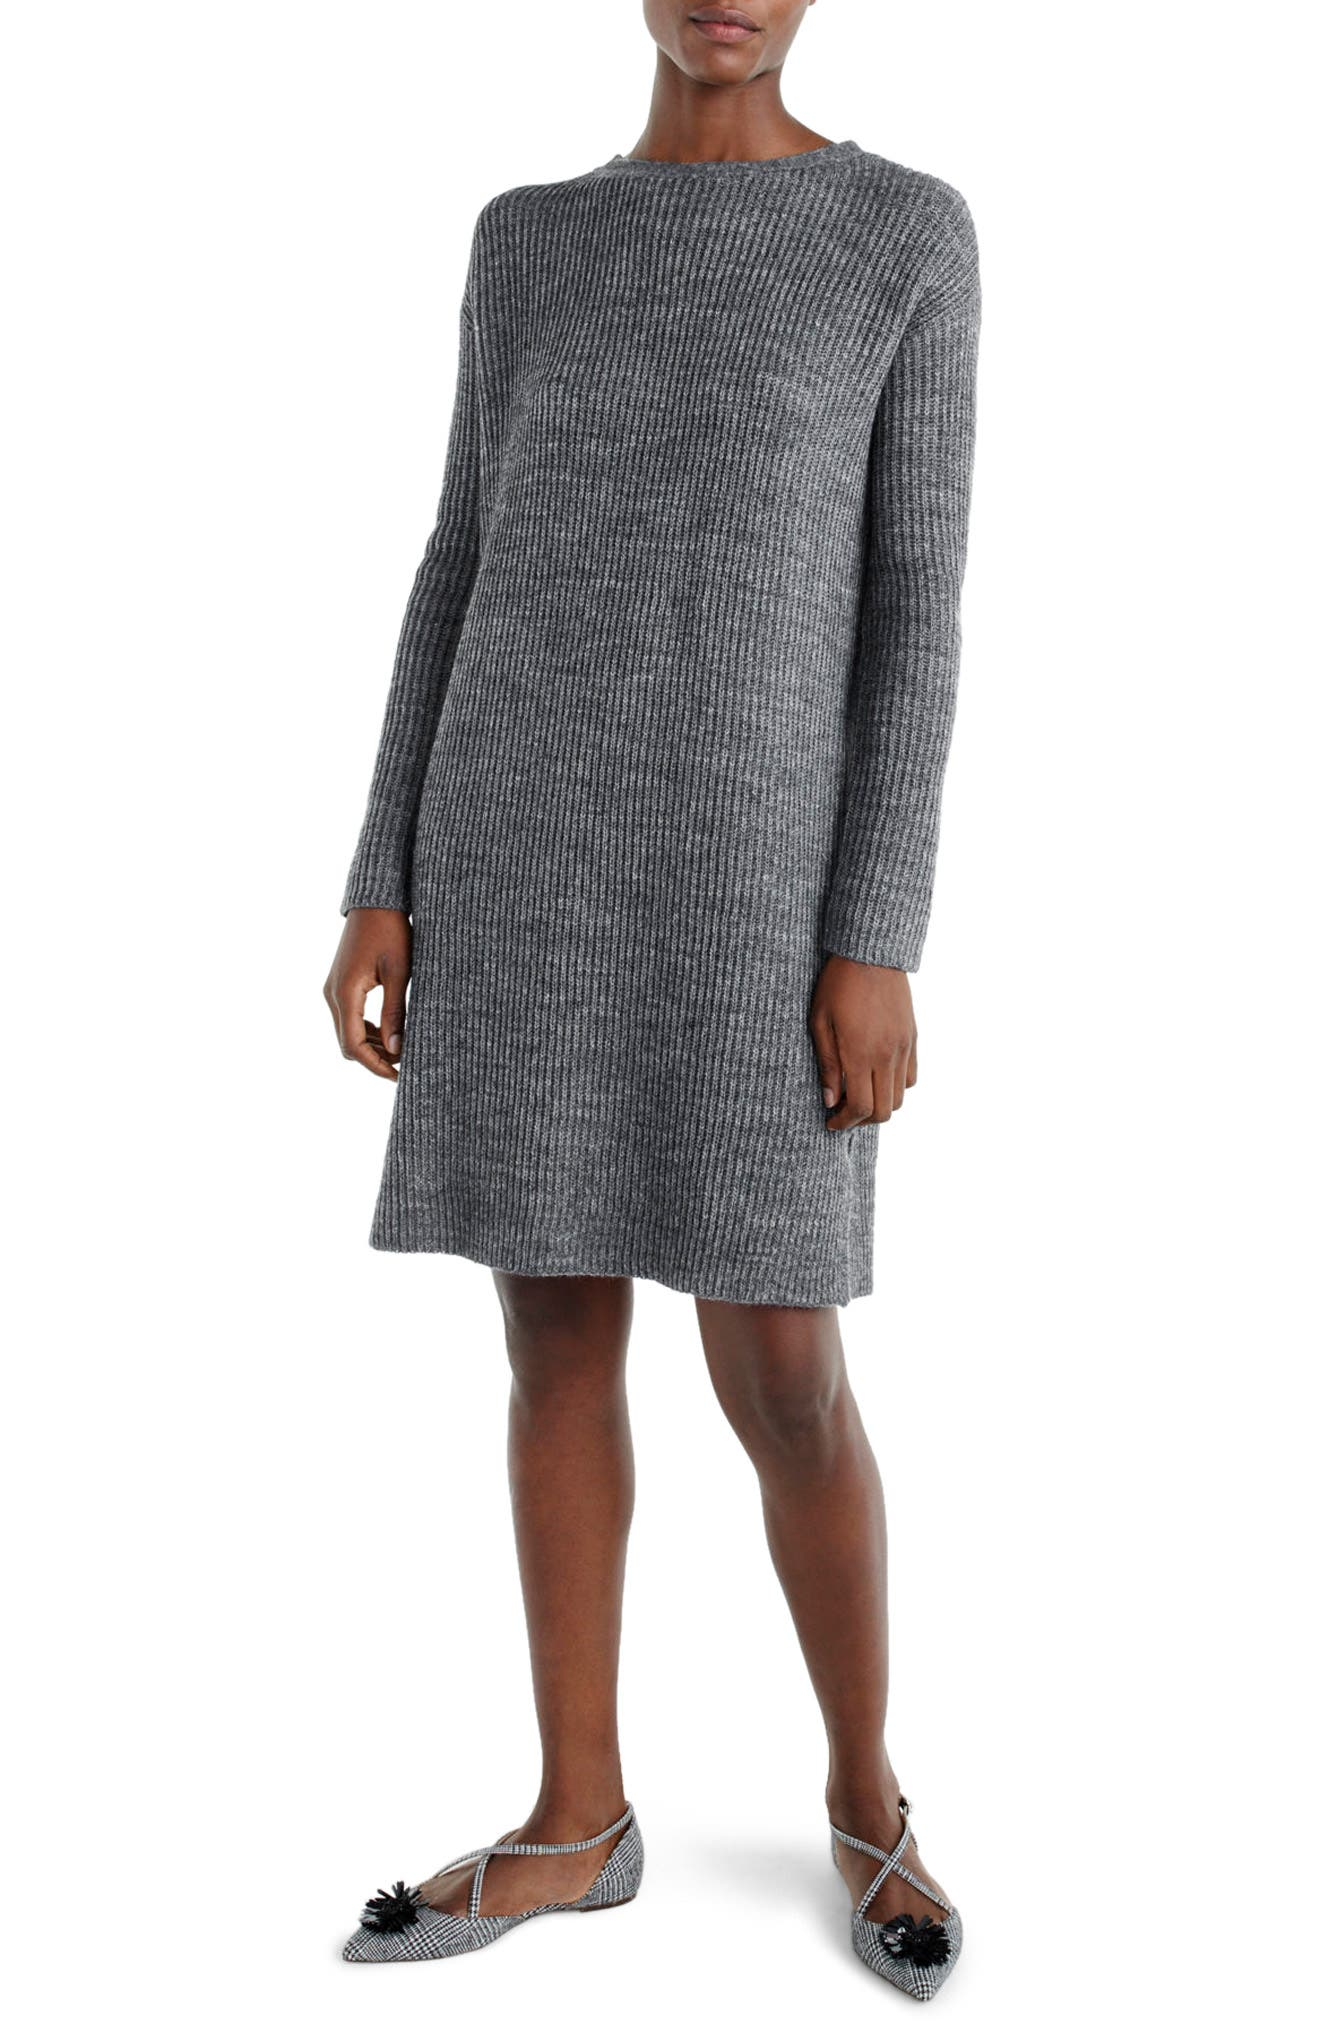 J.Crew Bow Tie Open Back Sweater Dress,                         Main,                         color, Heather Flannel